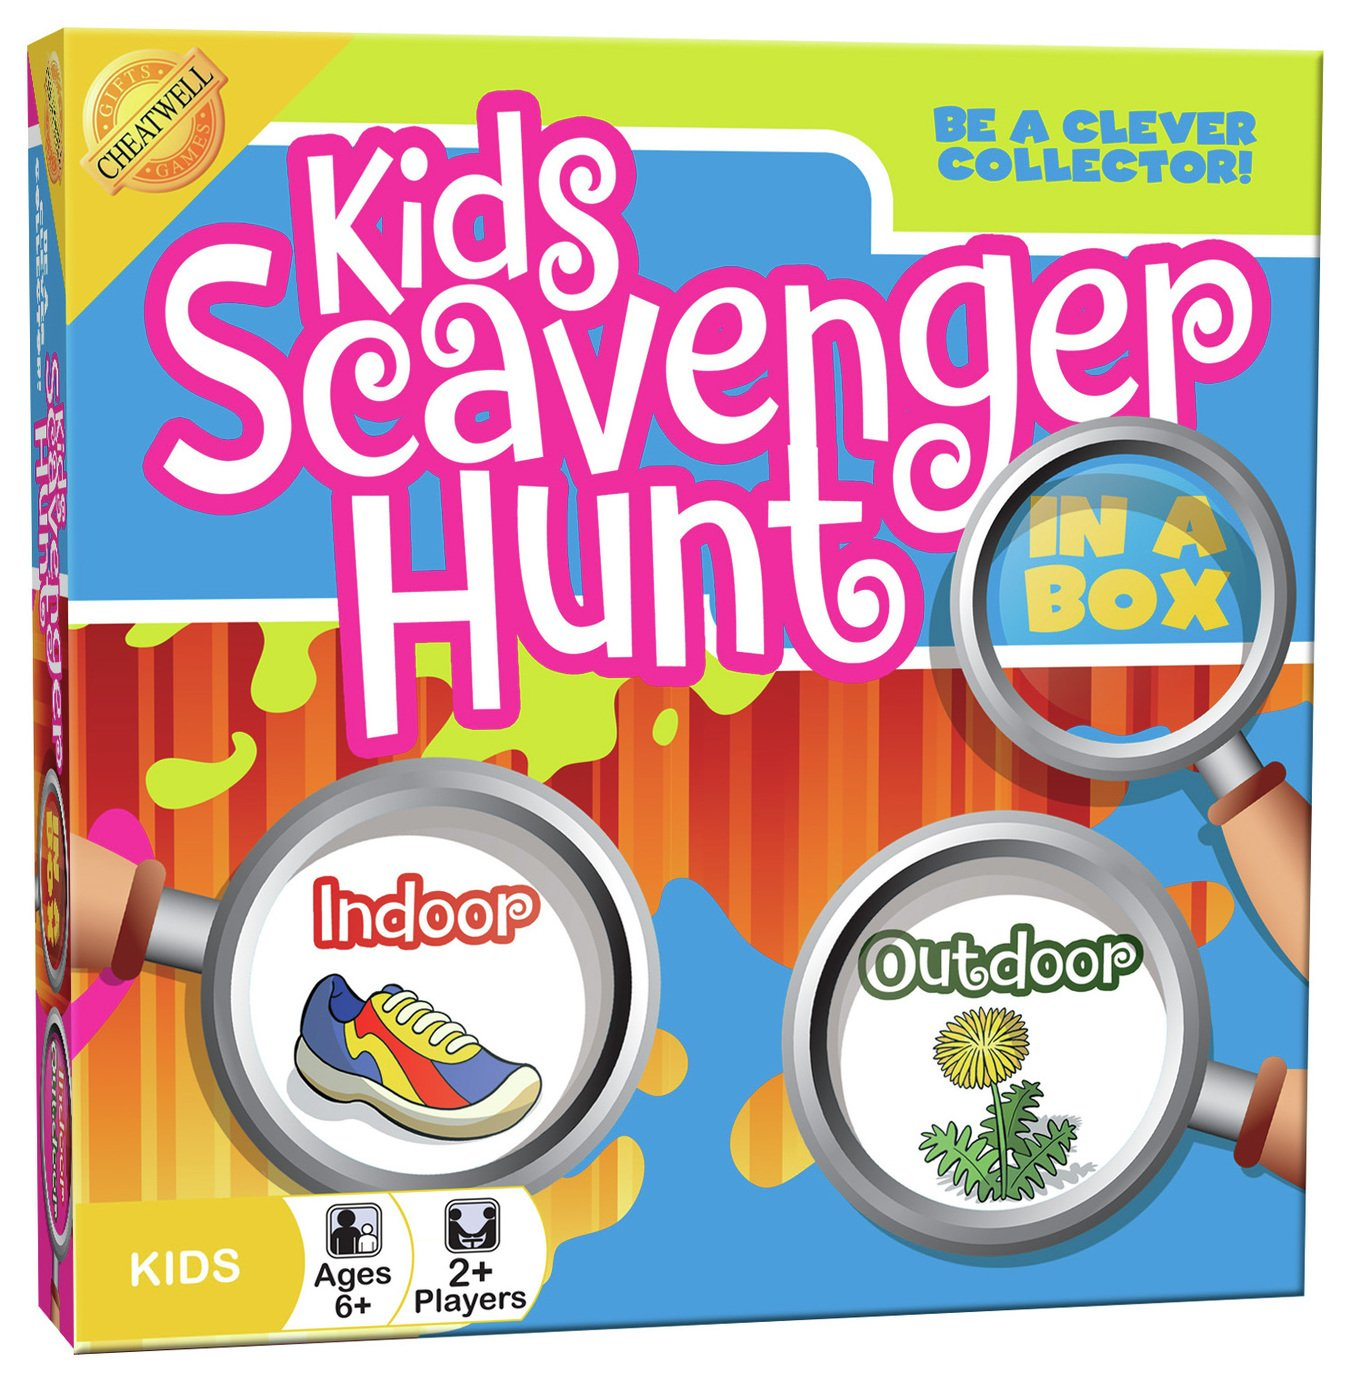 Image of Cheatwell Games Kids Scavenger Hunt Game